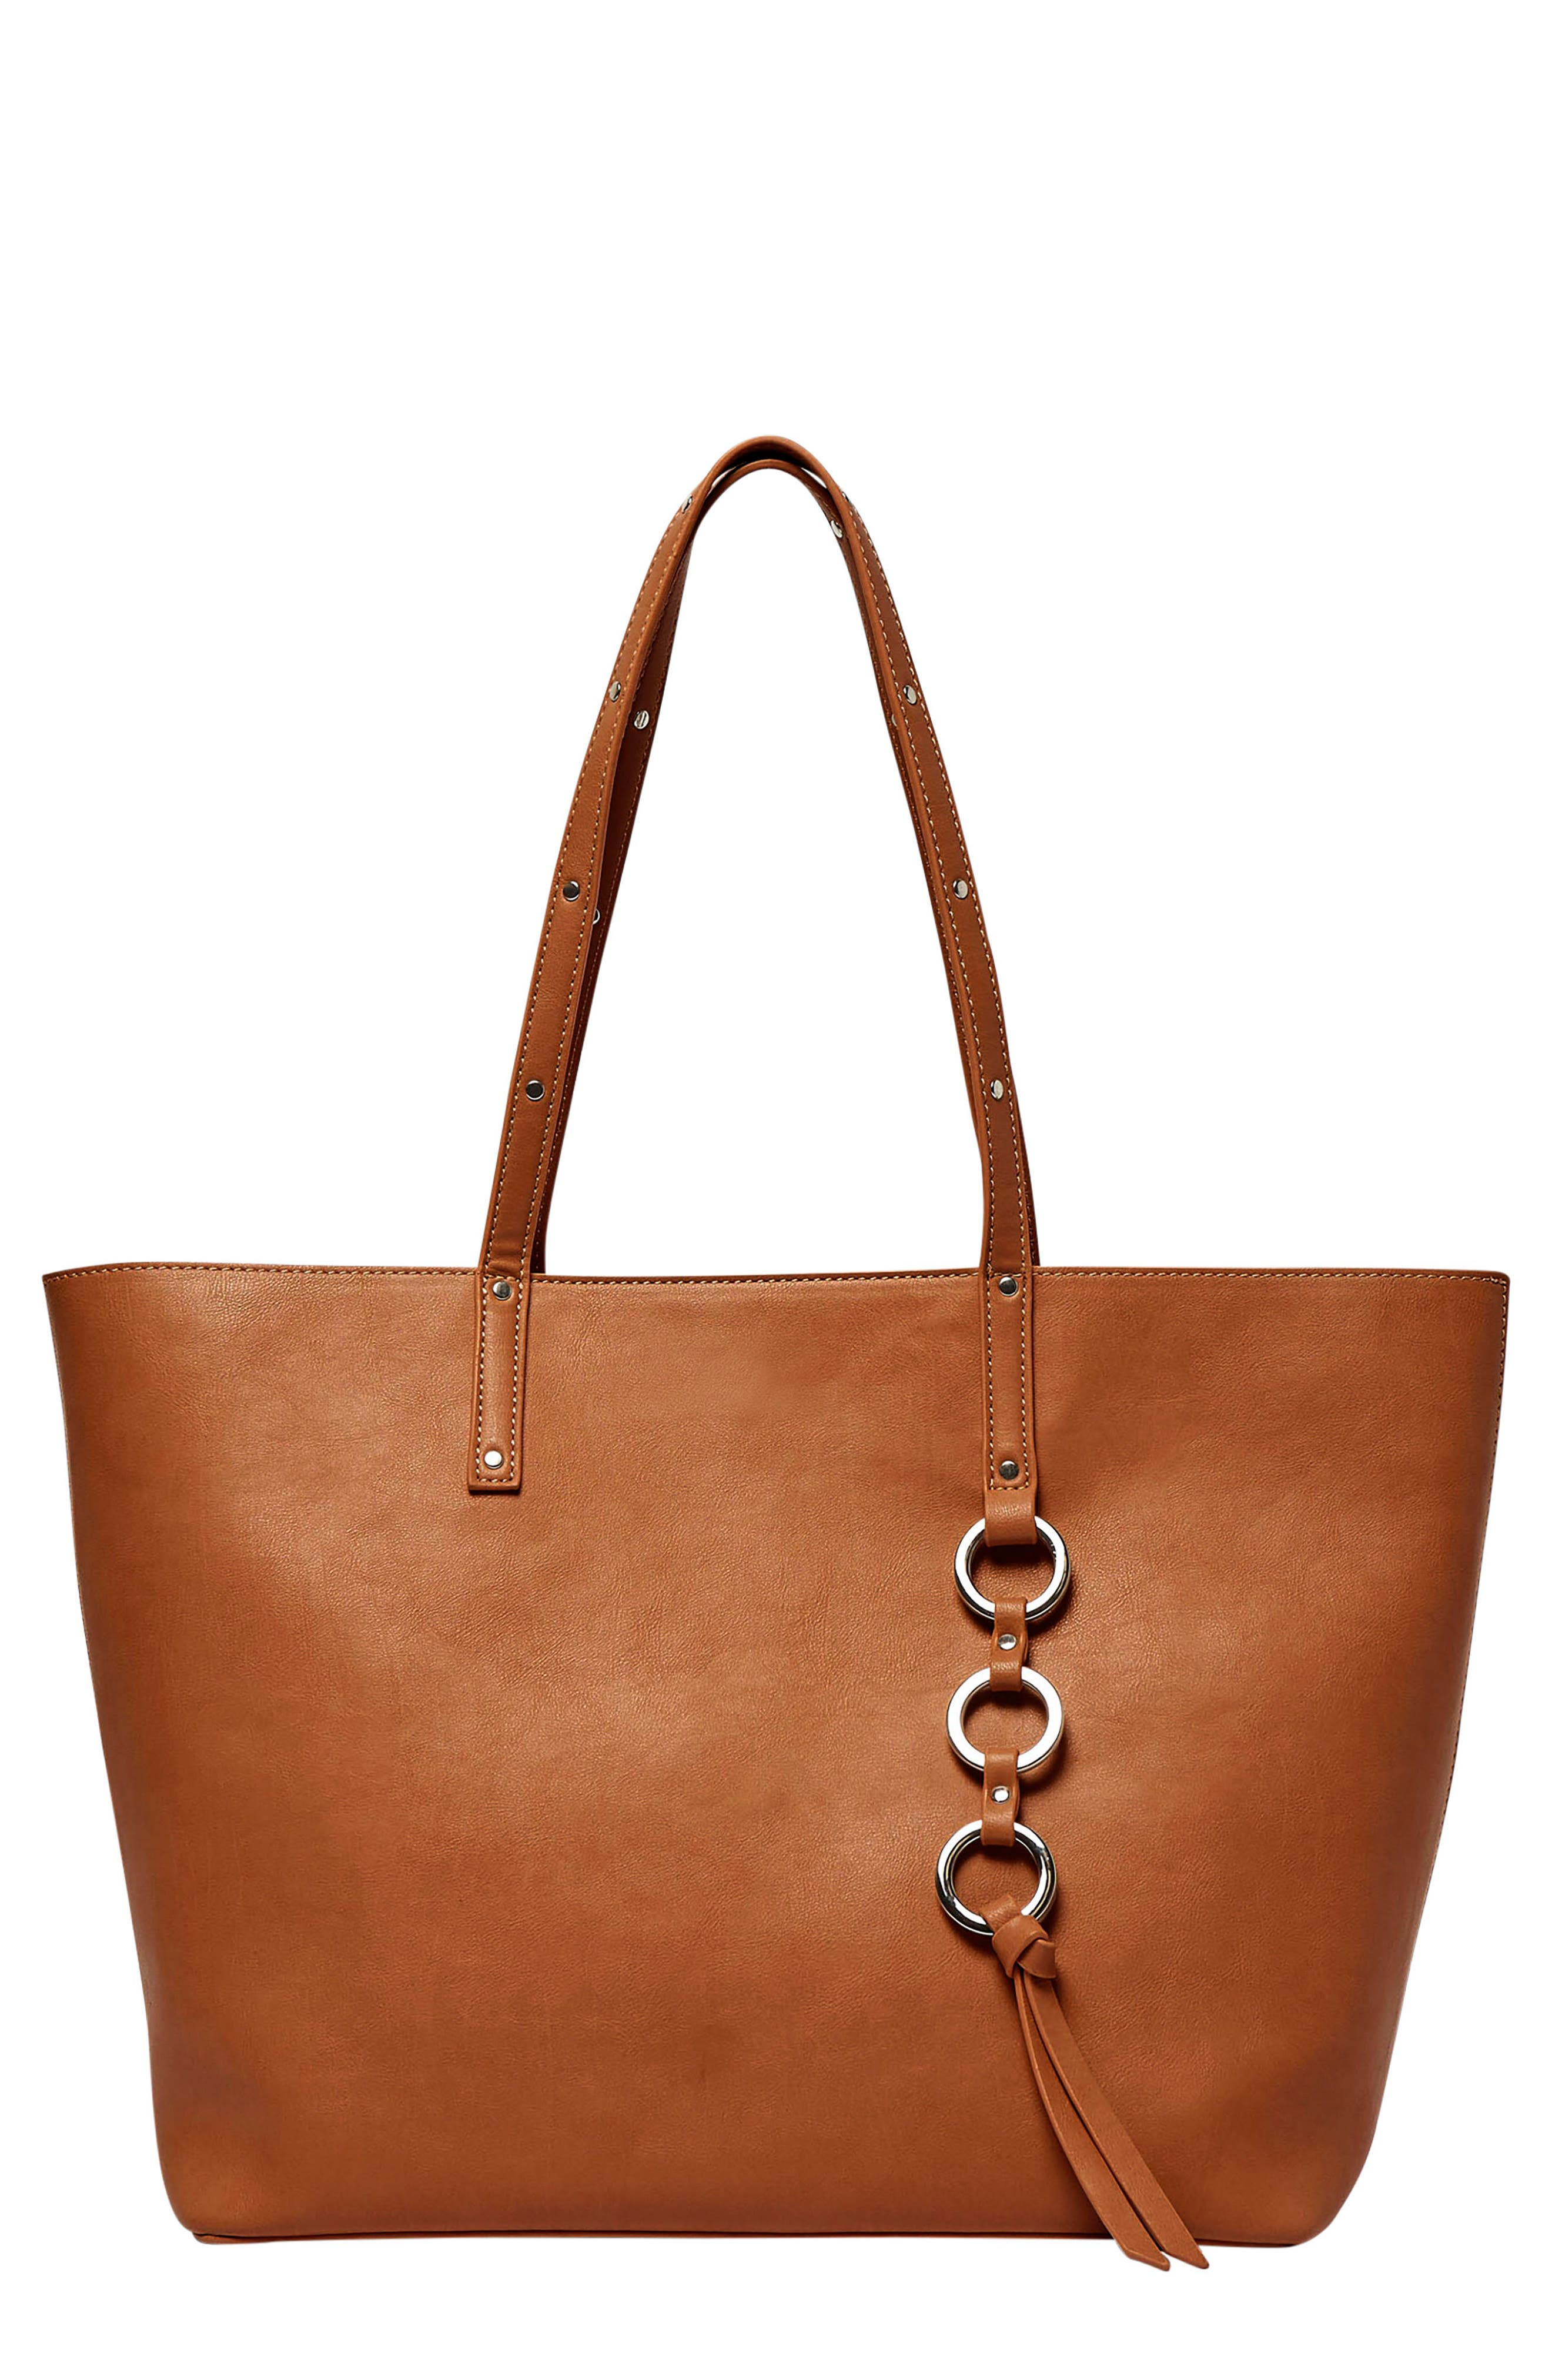 Wild Fire Vegan Leather Tote,                             Main thumbnail 1, color,